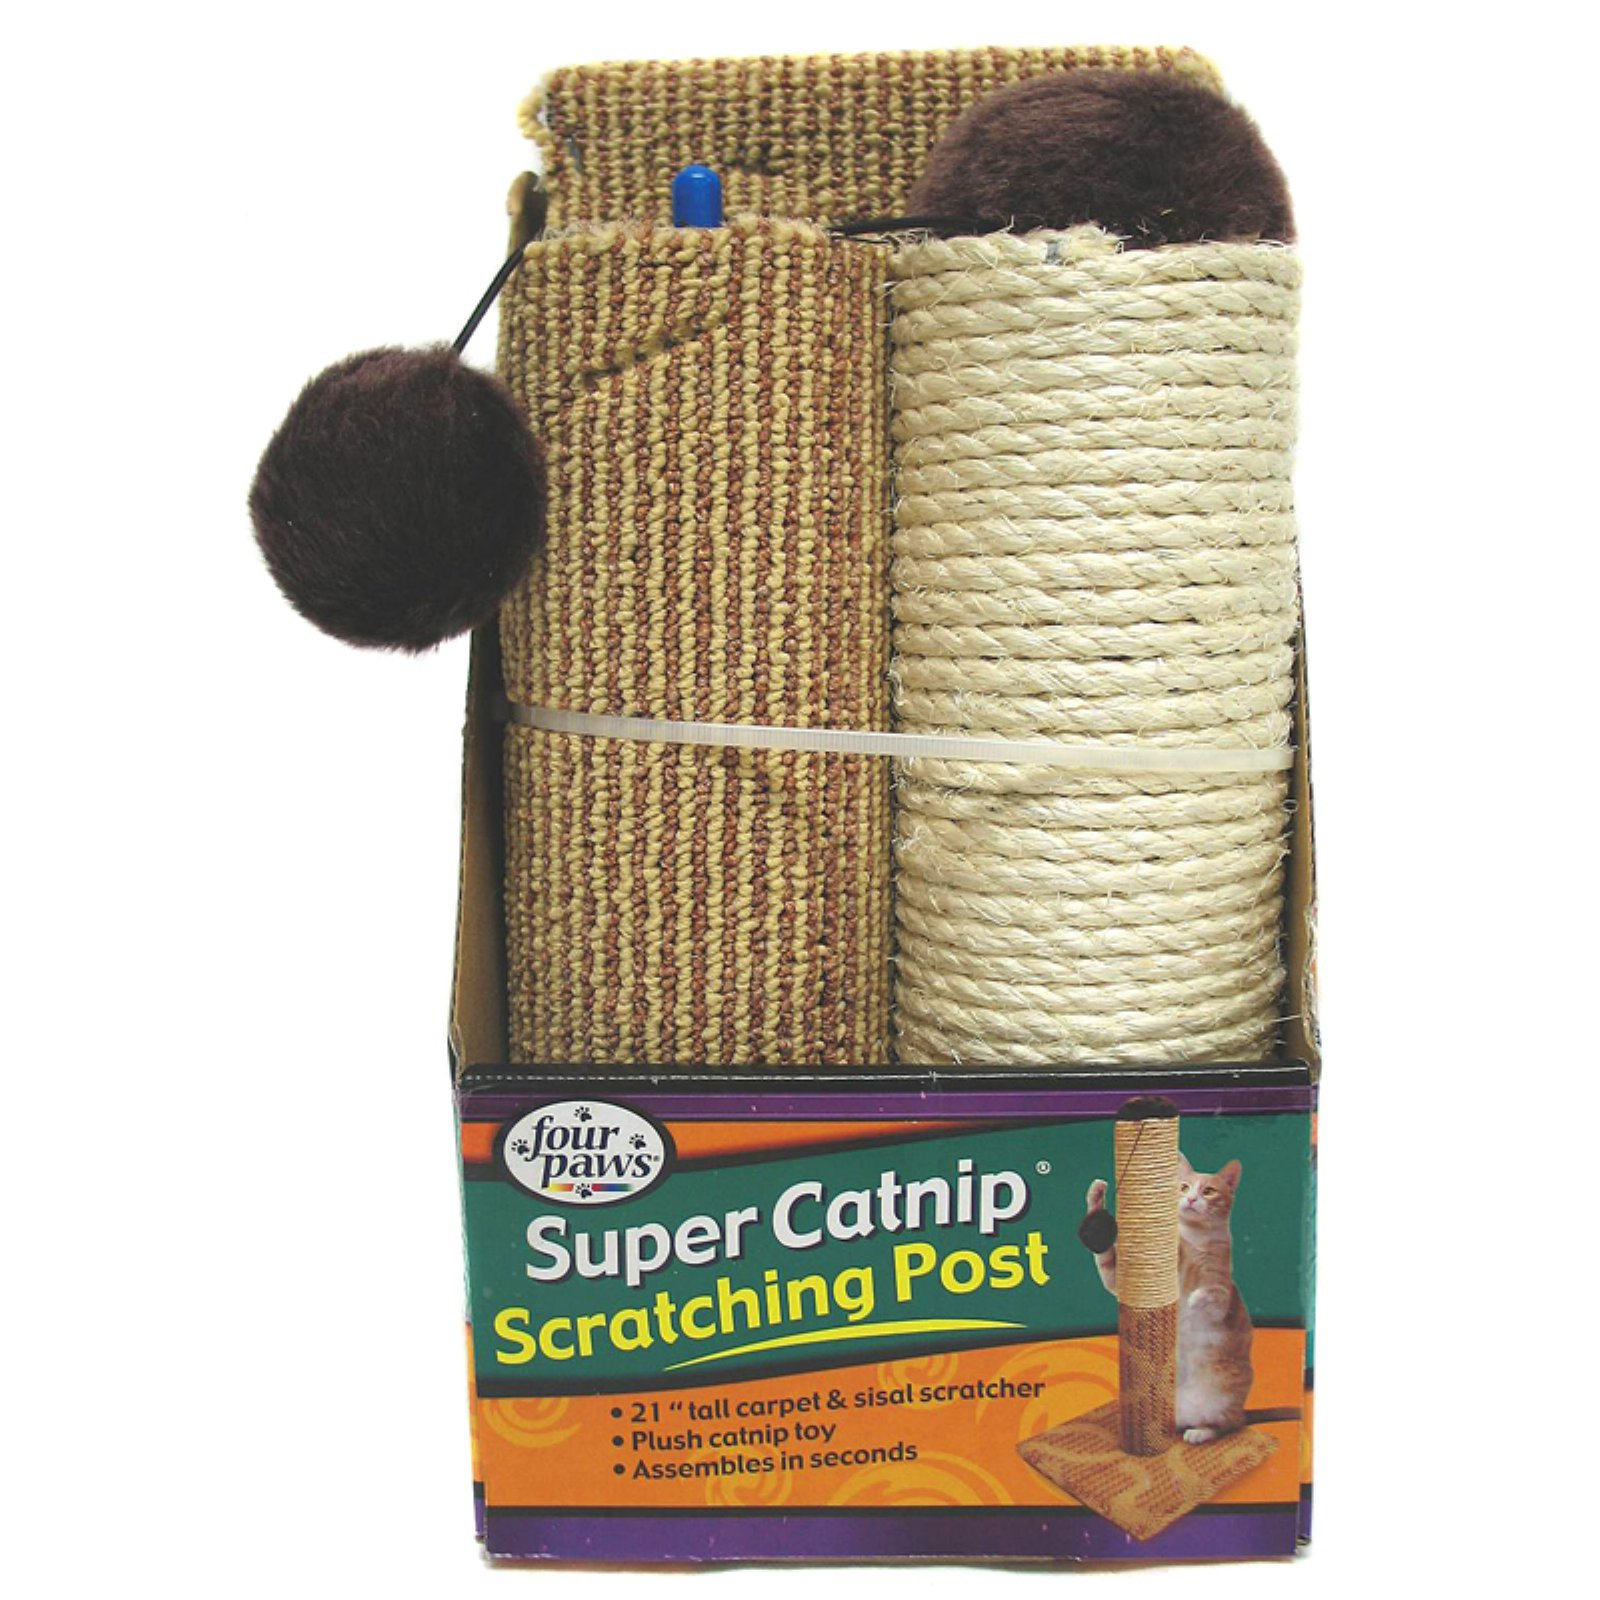 Four Paws 21 in. Super Catnip Scratching Post